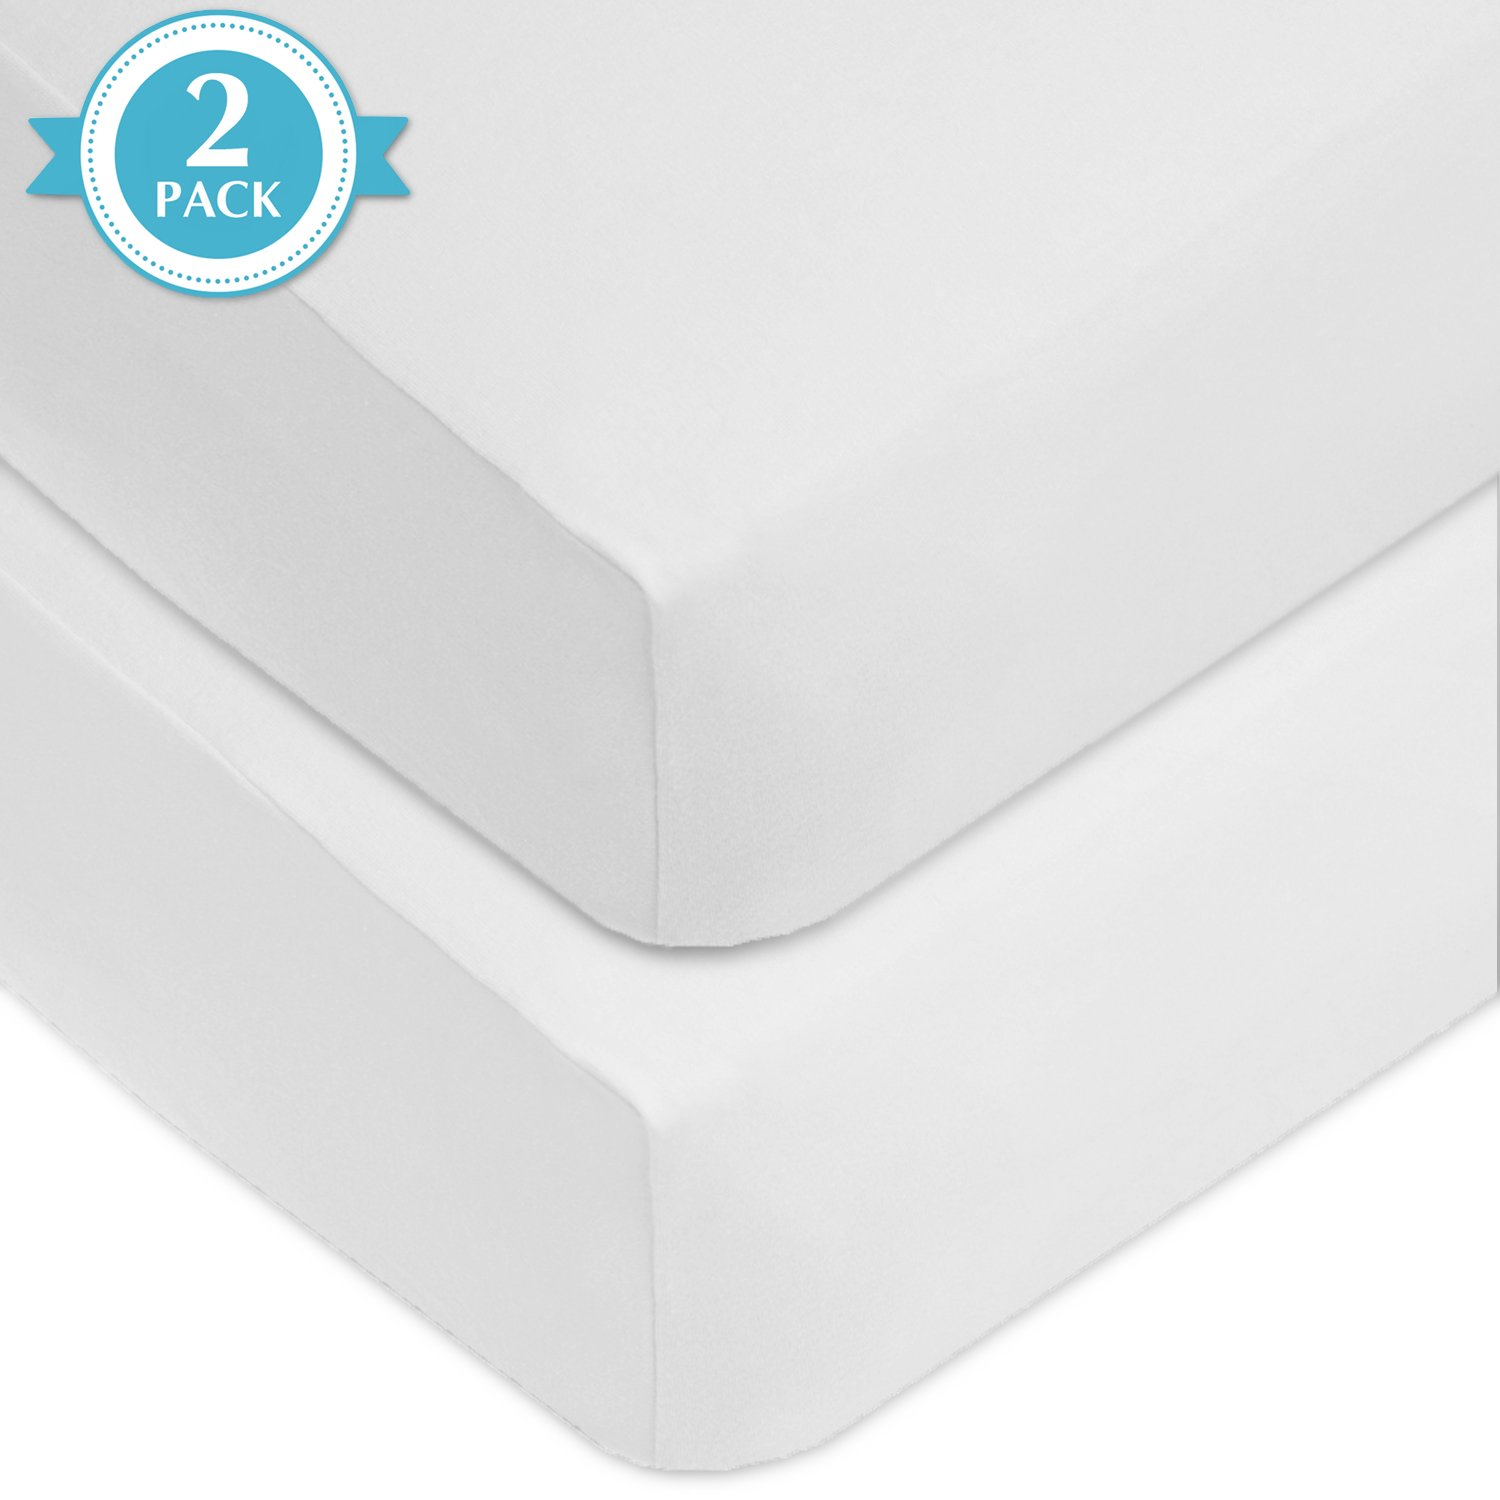 American Baby Company 2 Piece 100% Cotton Value Jersey Knit Fitted Crib Sheet, White by American Baby Company (Image #2)